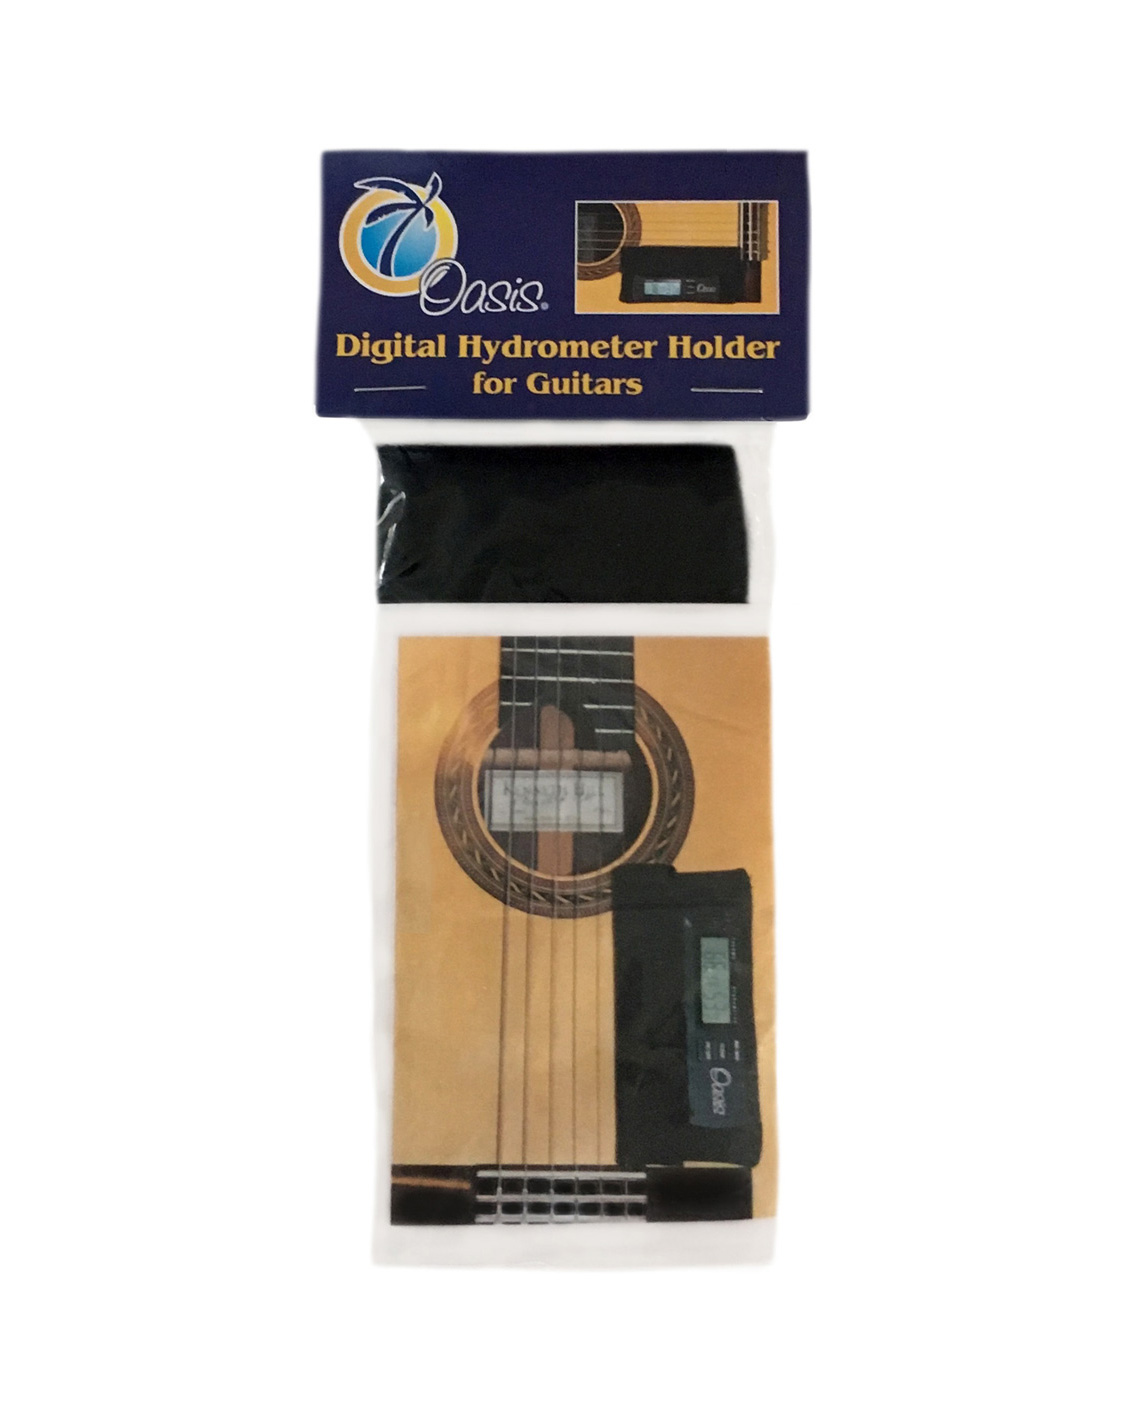 Hygrometer holder for mounting on guitar